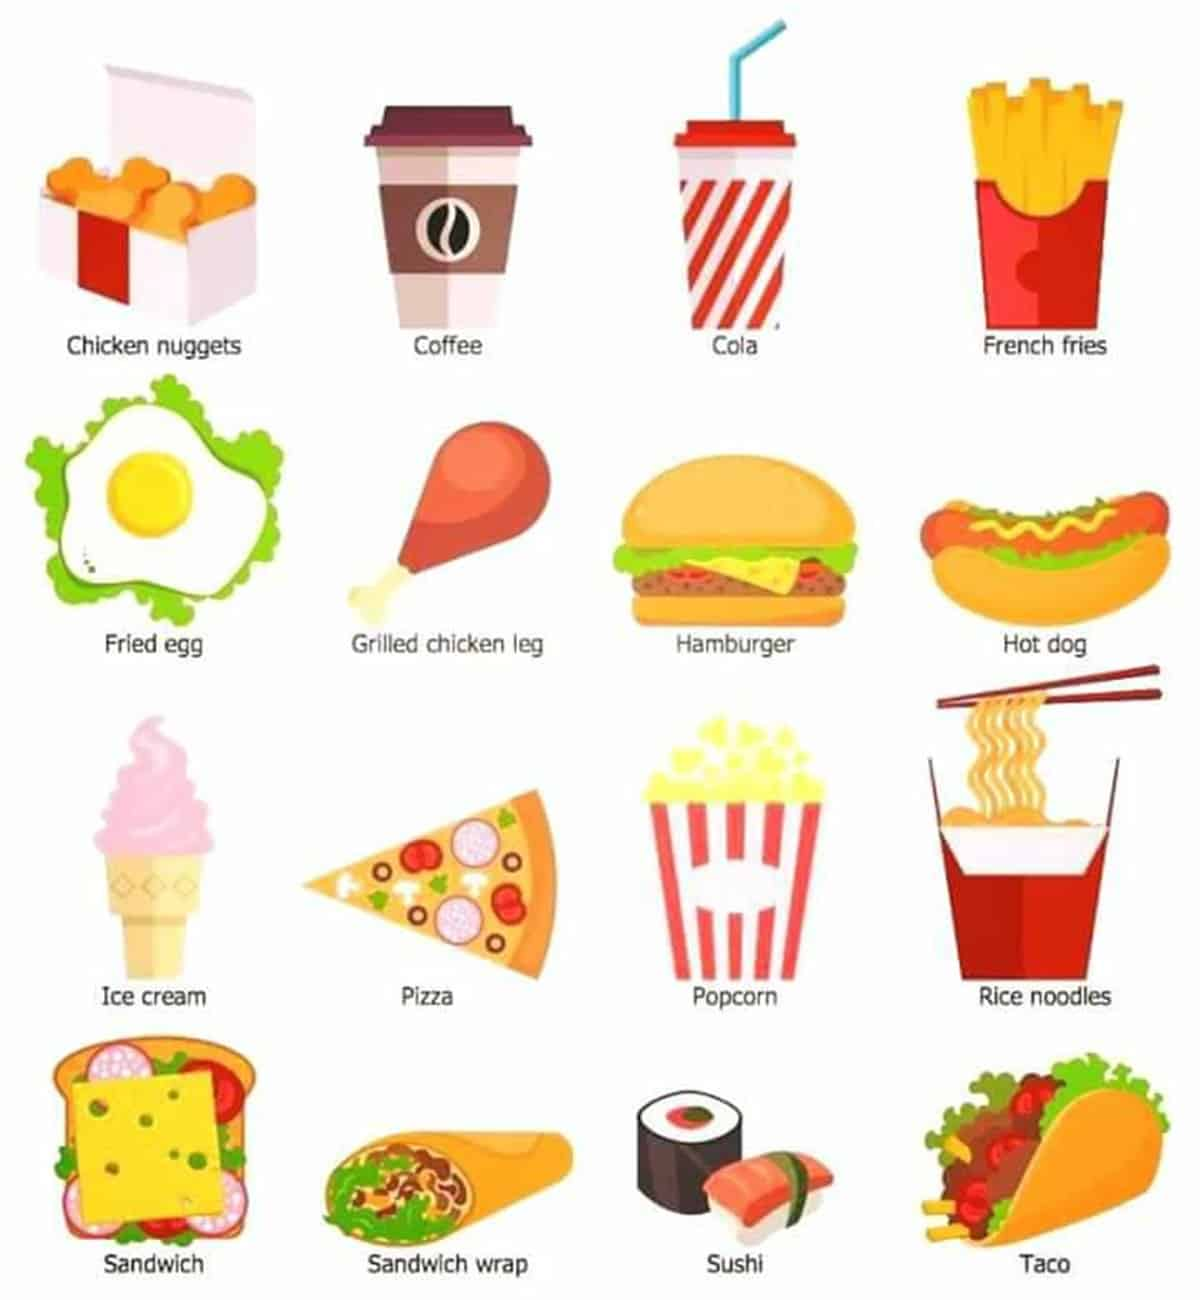 Food and Drinks Vocabulary in English: 500+ Items Illustrated 18